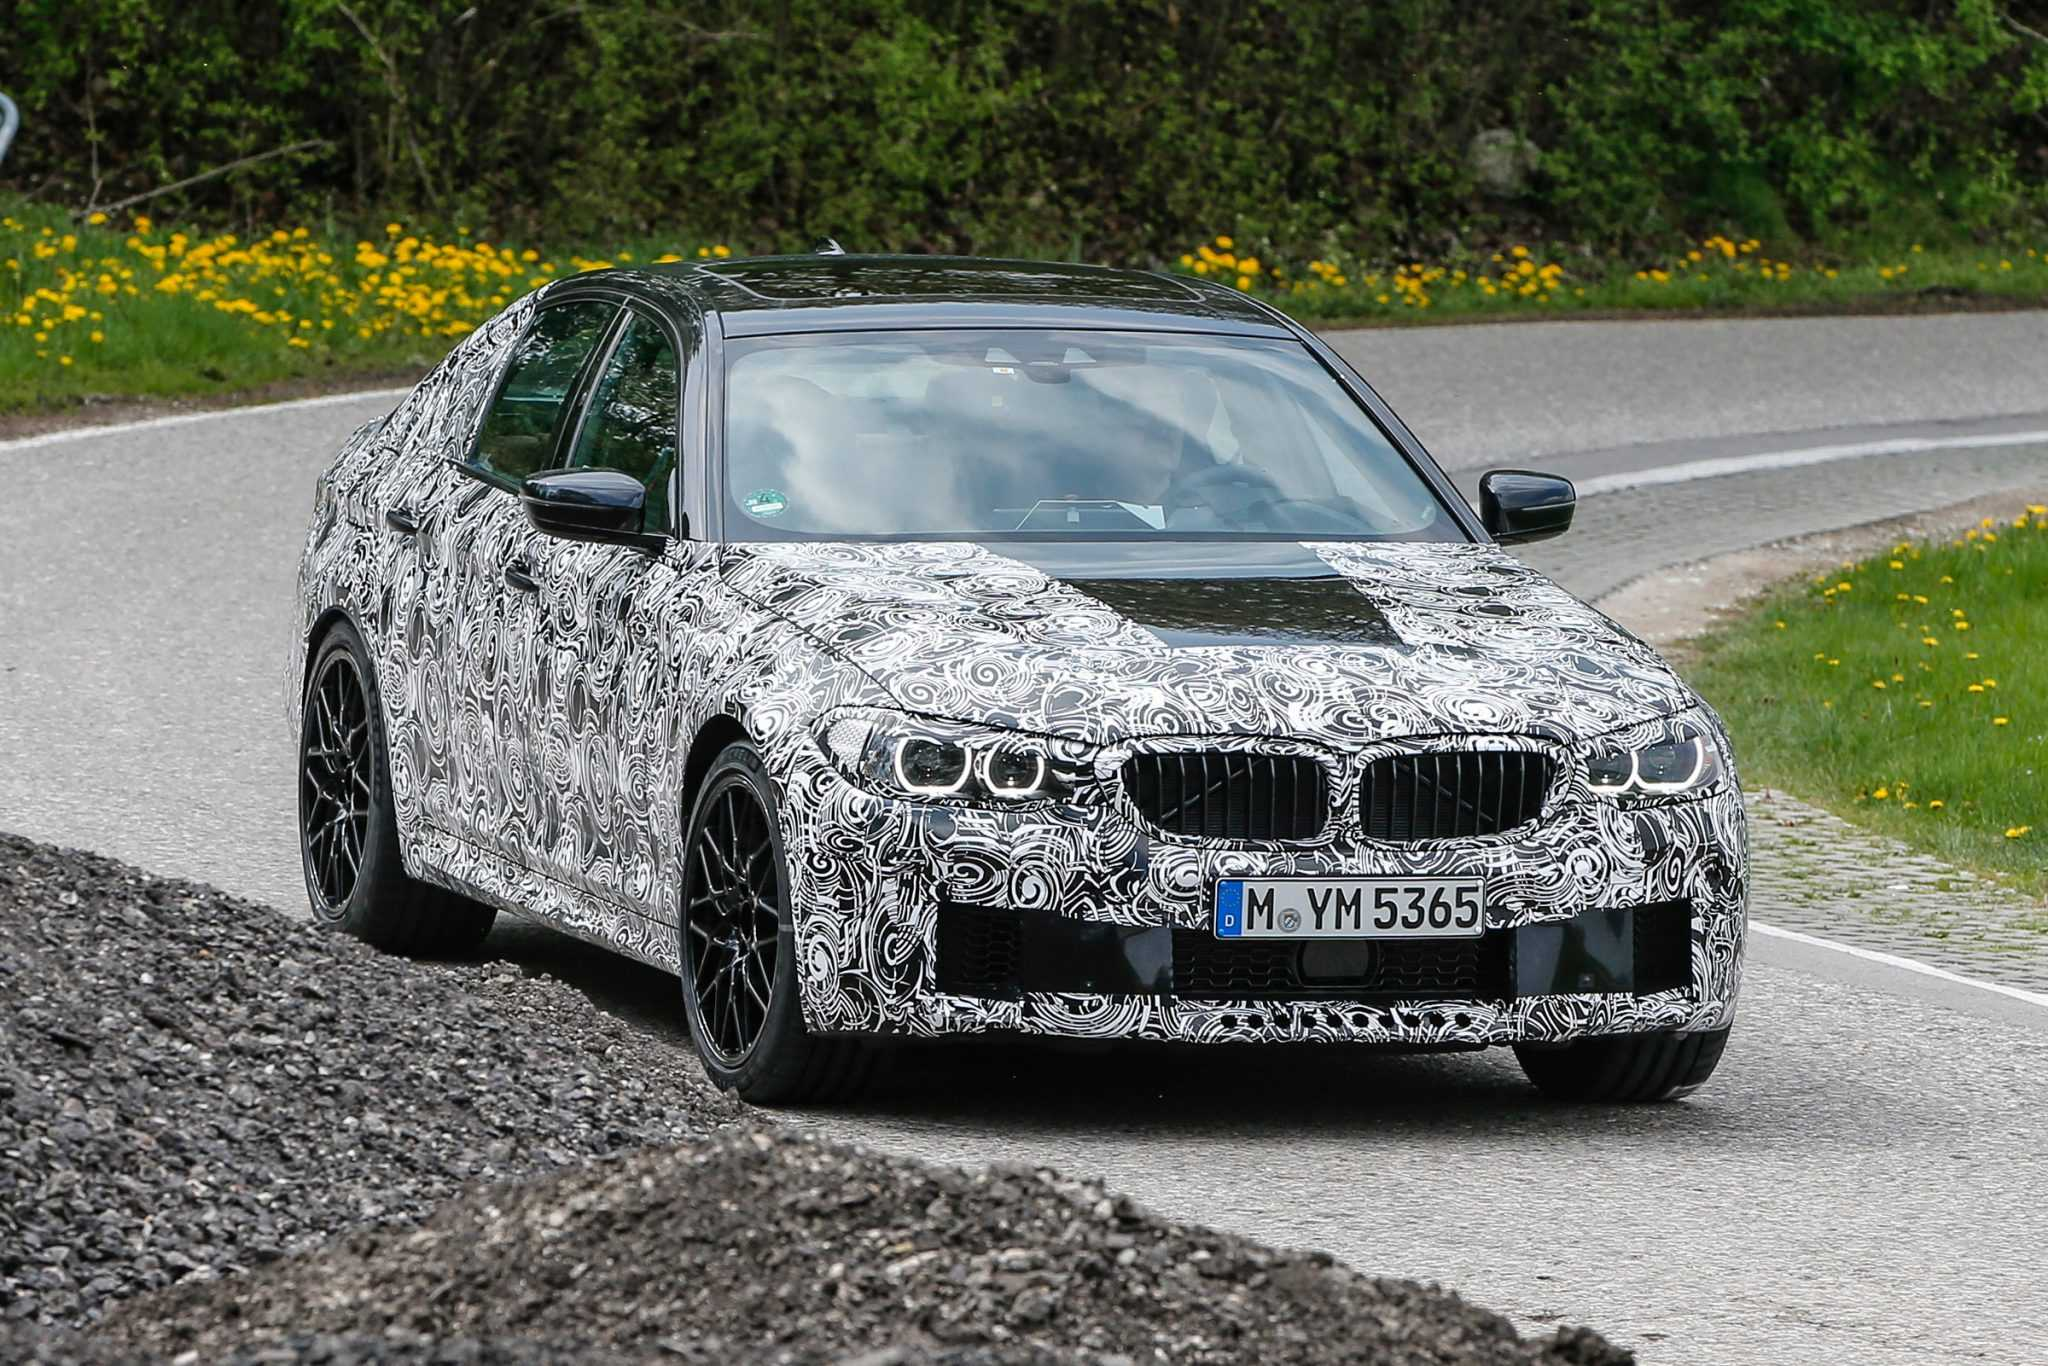 BMW 5 Series Touring, GT and M5 Spy Photos Are Out